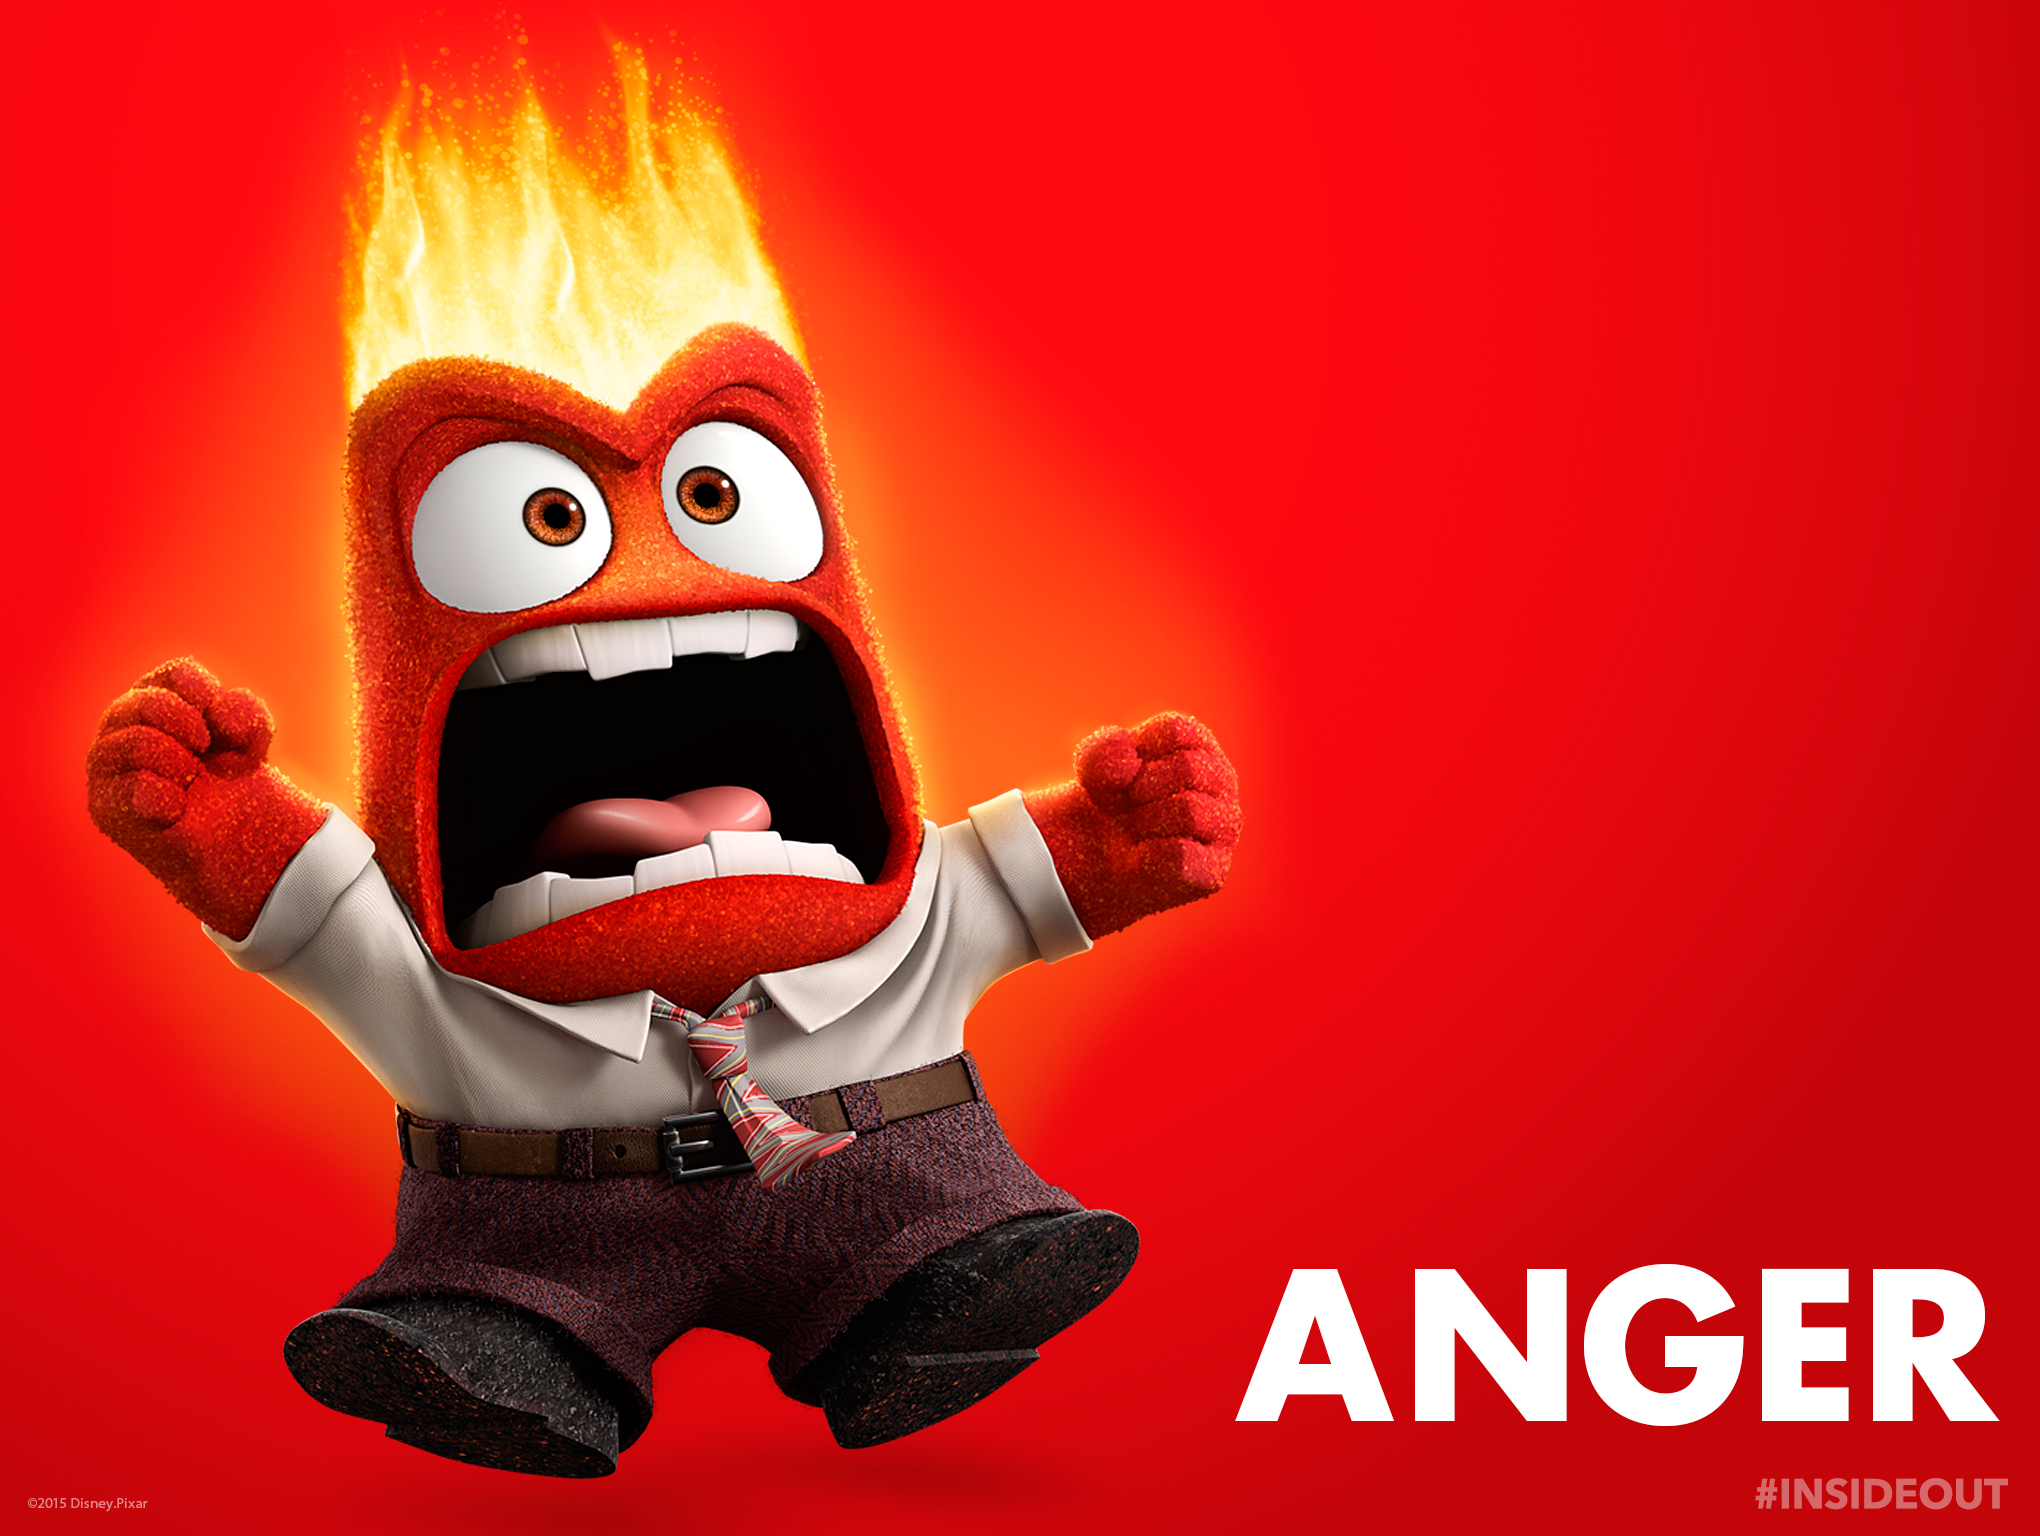 inside out Anger standard